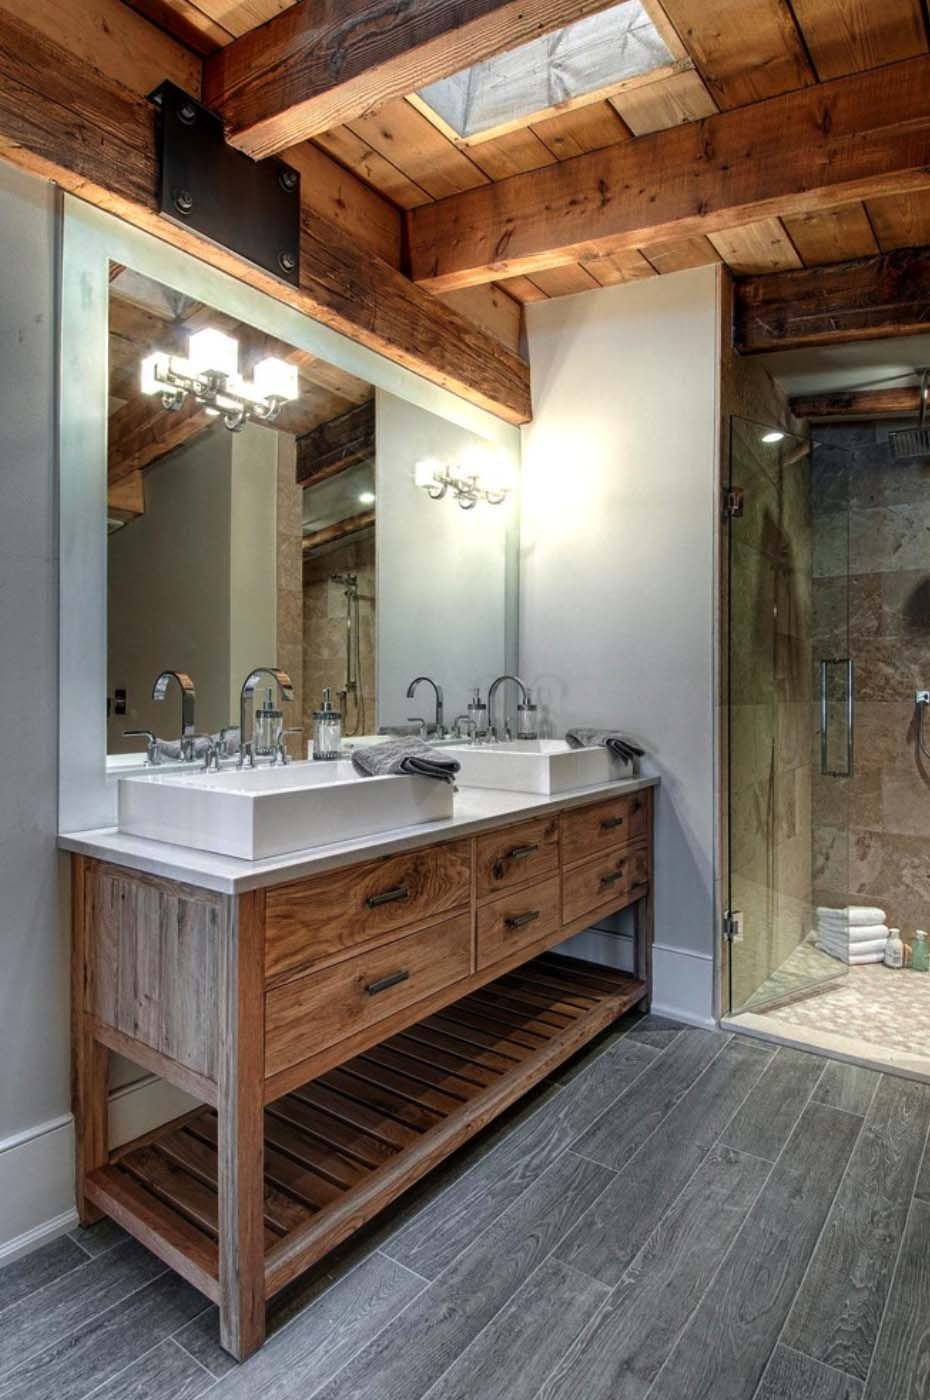 Luxury Canadian Home Reveals Splendid Rustic-modern Aesthetic Bathrooms Modern